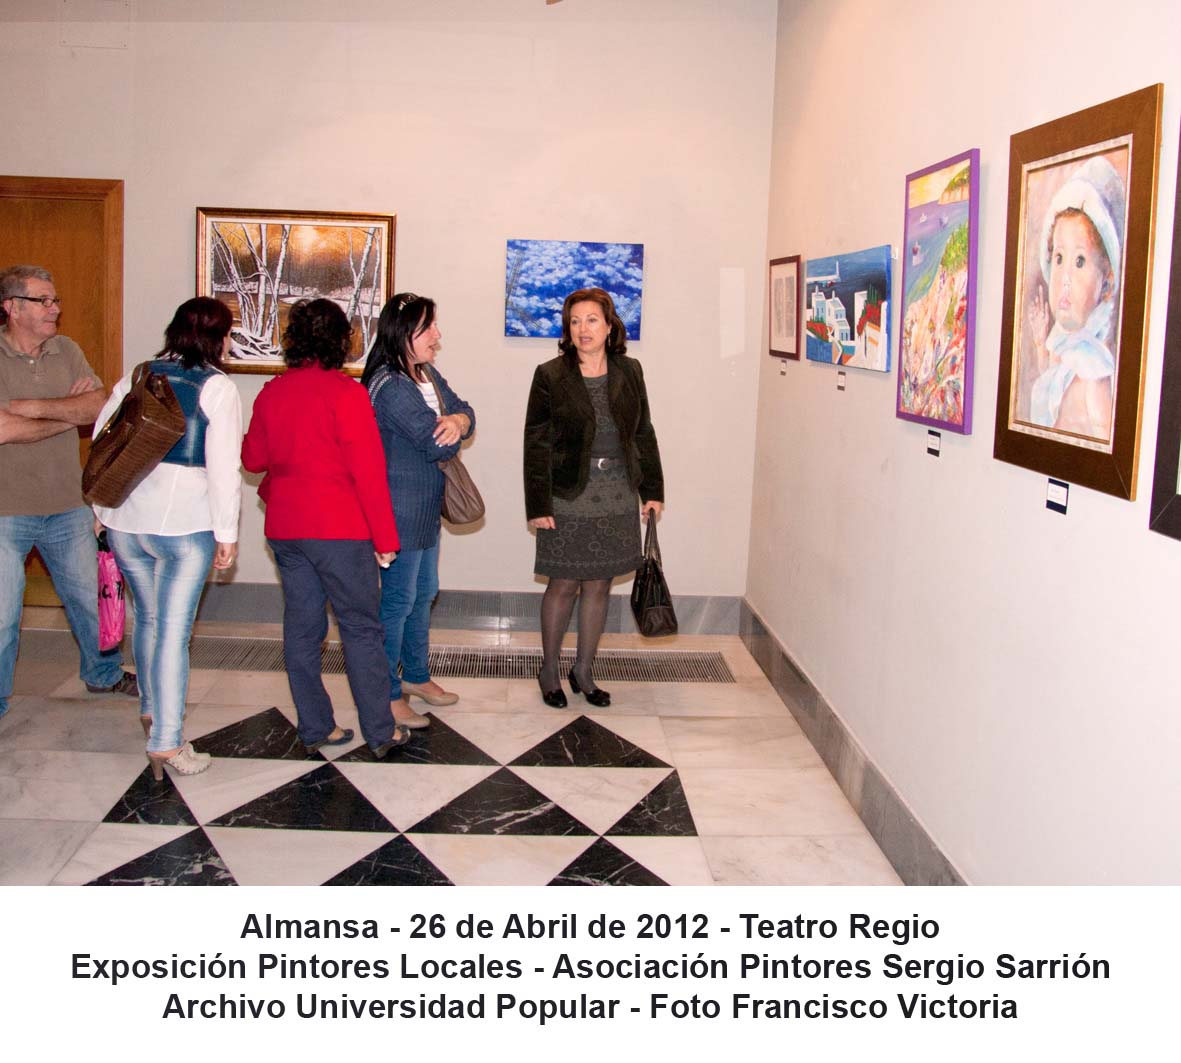 120426 ASOC PINTORES SERGIO SARRION 04